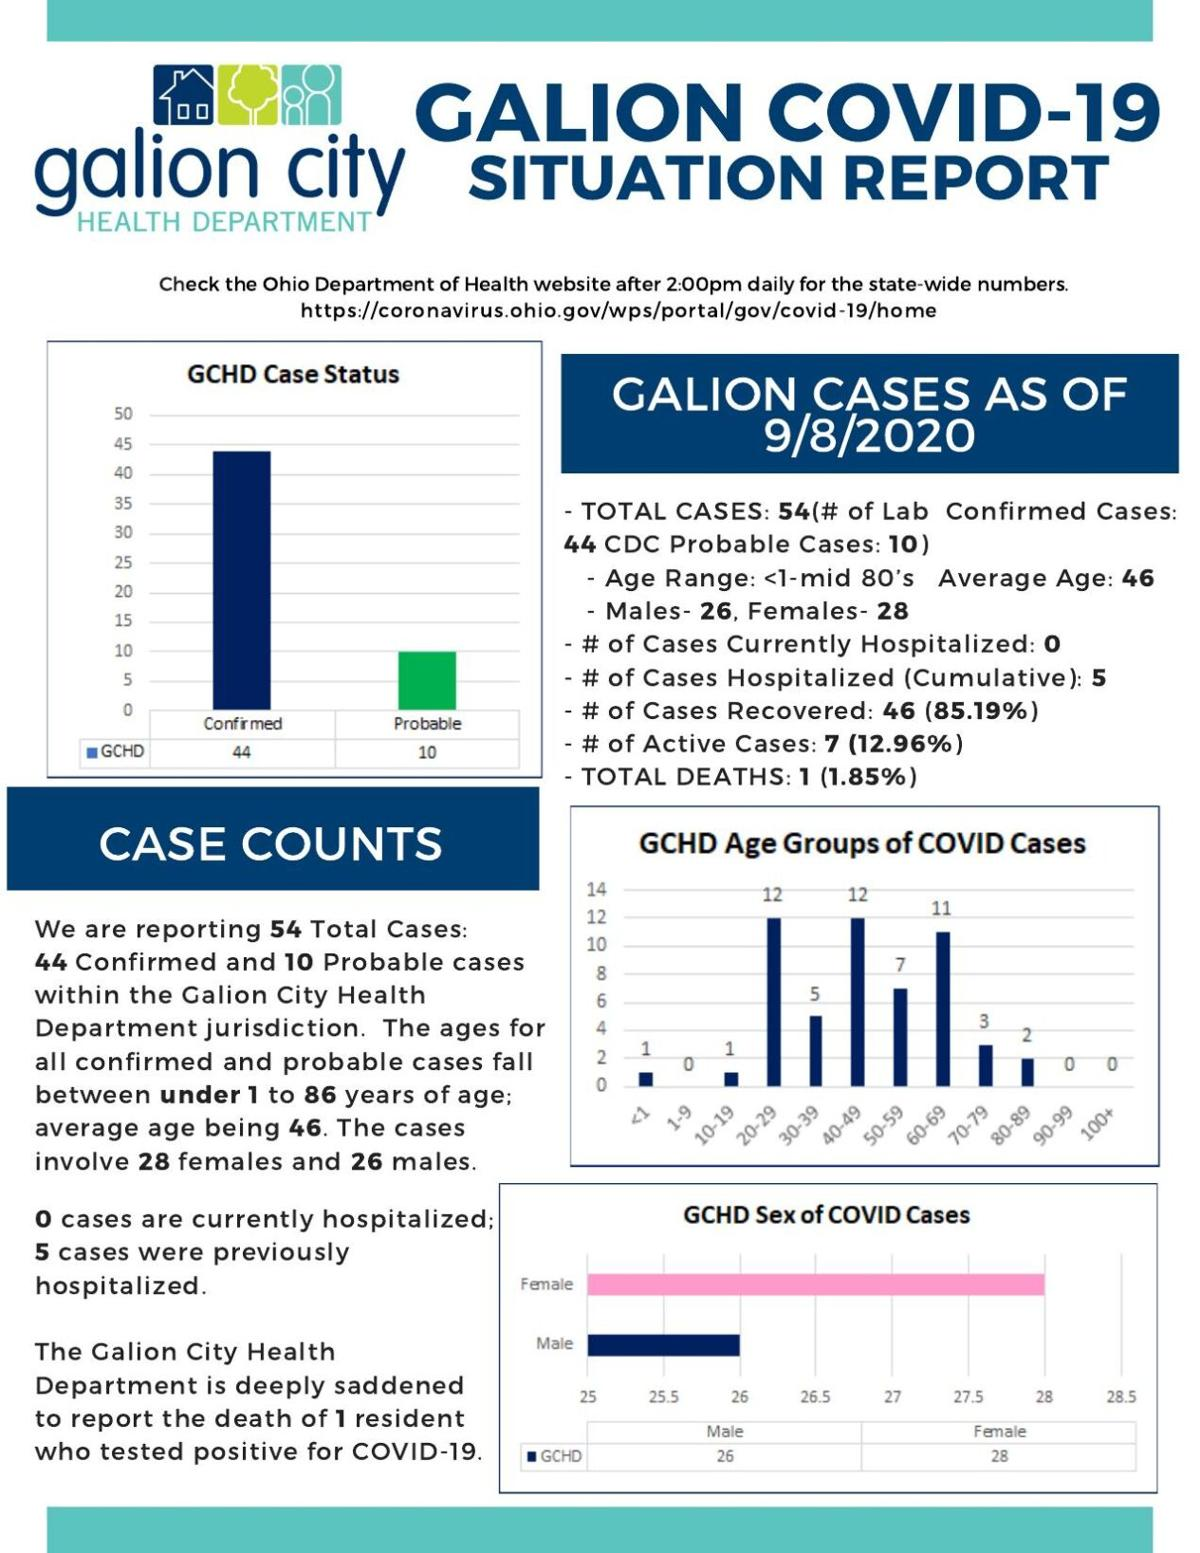 Galion COVID-19 report on Sept. 8